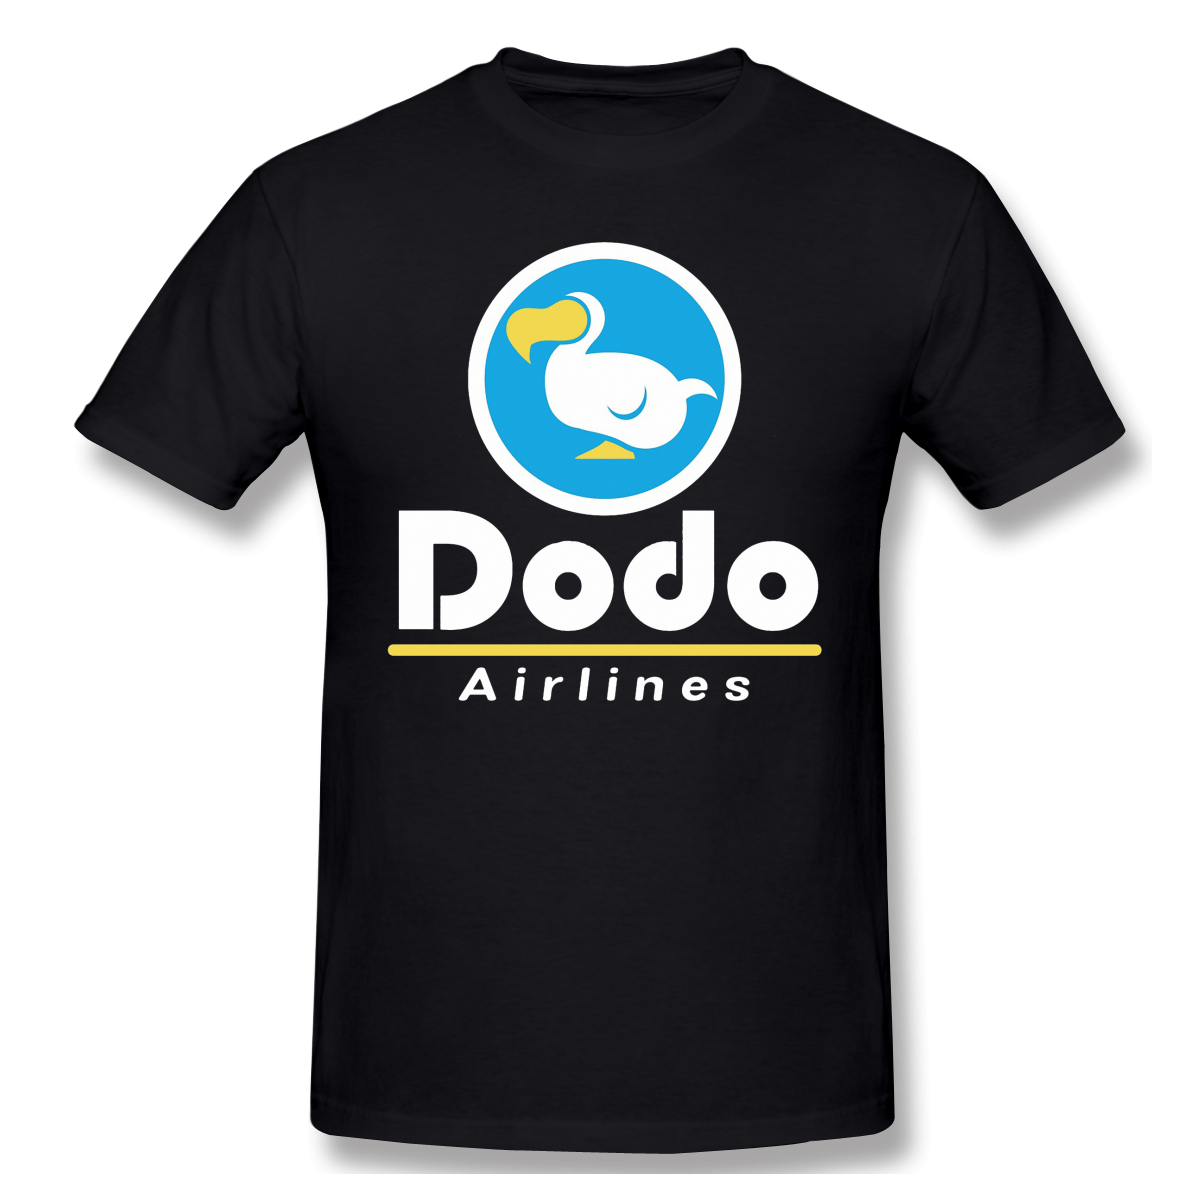 Dodo Airlines Logo Funny T-Shirt Men Summer O Neck Casual Cotton T Shirt Graphic Tee Animal Crossing Crew Neck Top Free Shipping